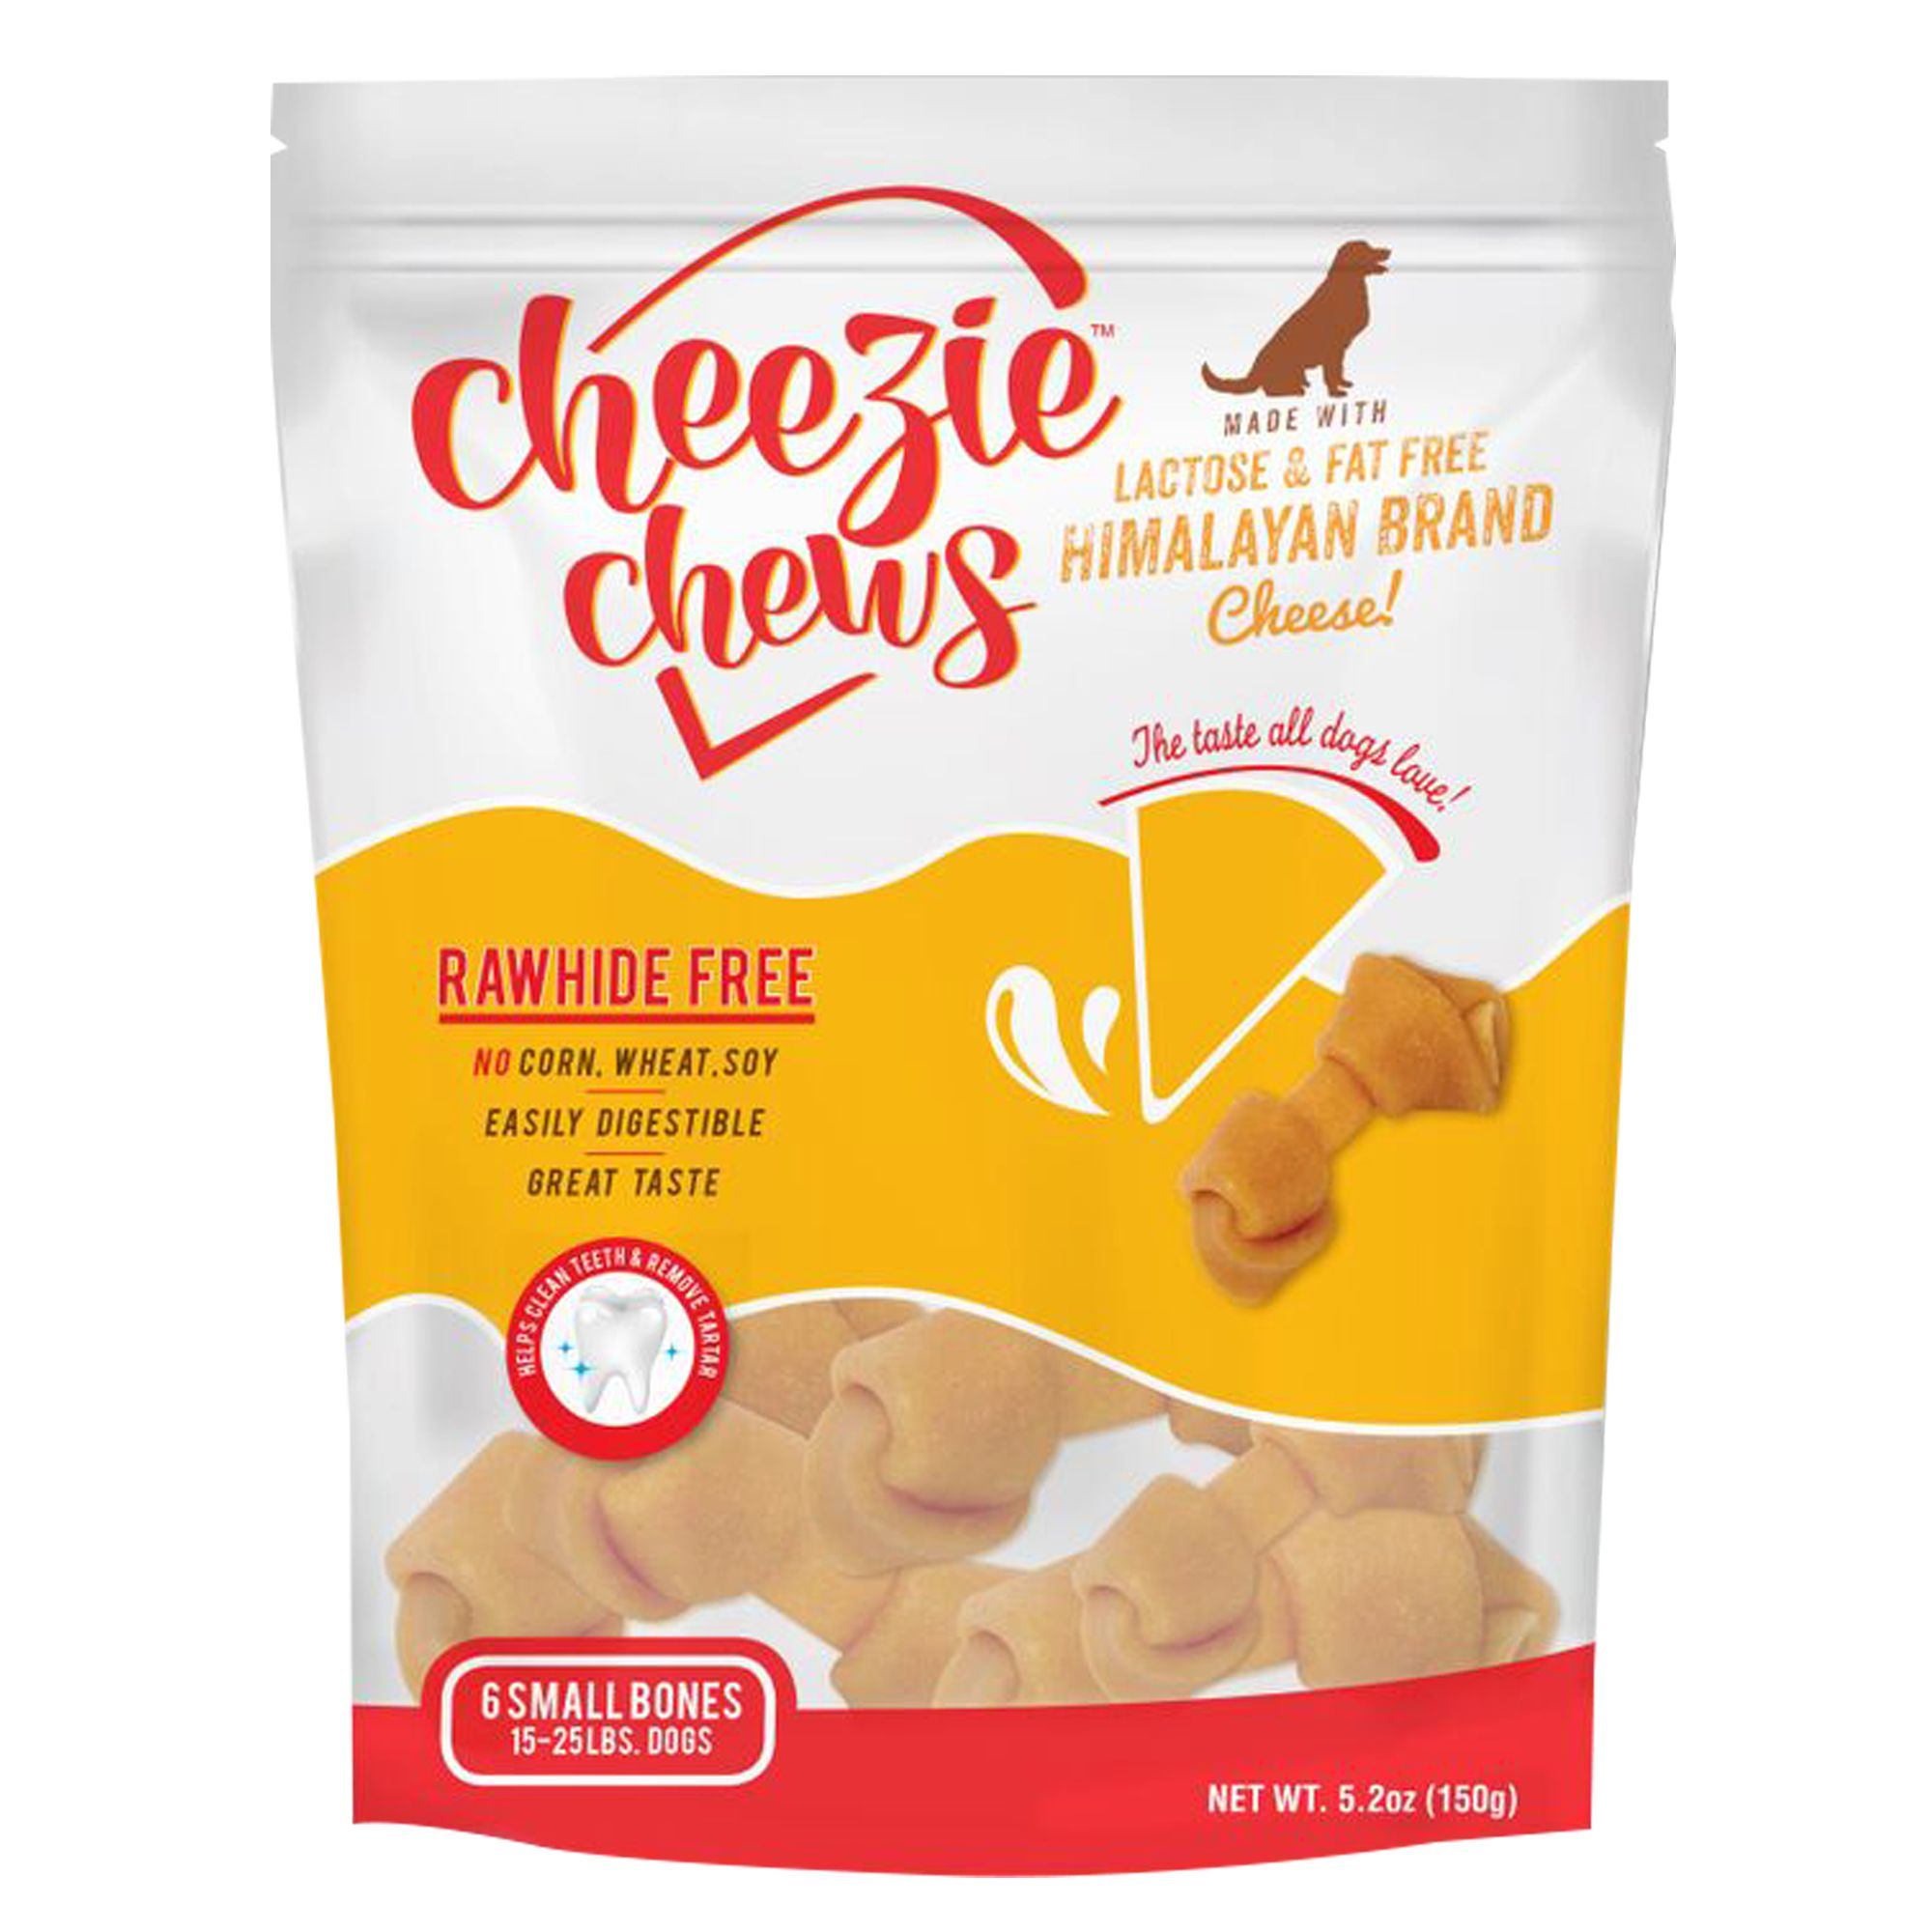 Cheezie Chews Rawhide Free Small Dog Treat - Cheese size: 6 Count, Natural Cheese, Rawhide Free Knotted Chew, Adult and Senior, Himalayan Brand Cheese (Skim Milk, Lime, Enzymes) 5265664